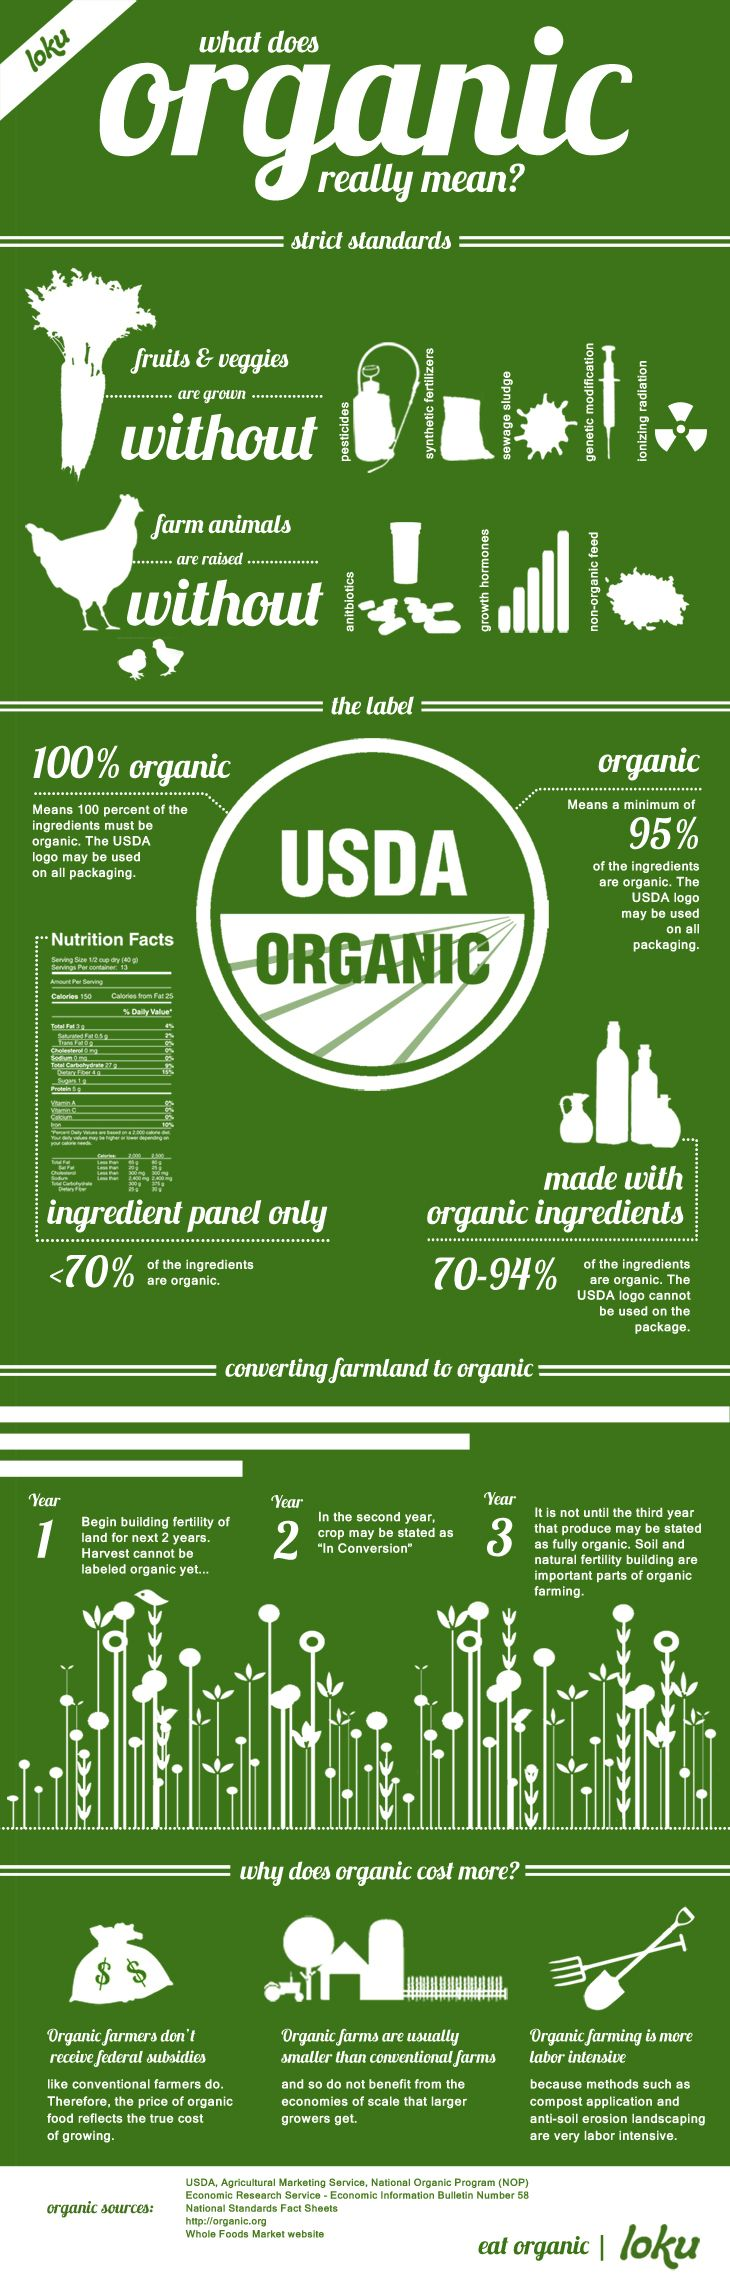 Why Do We Spend More On Organic Food